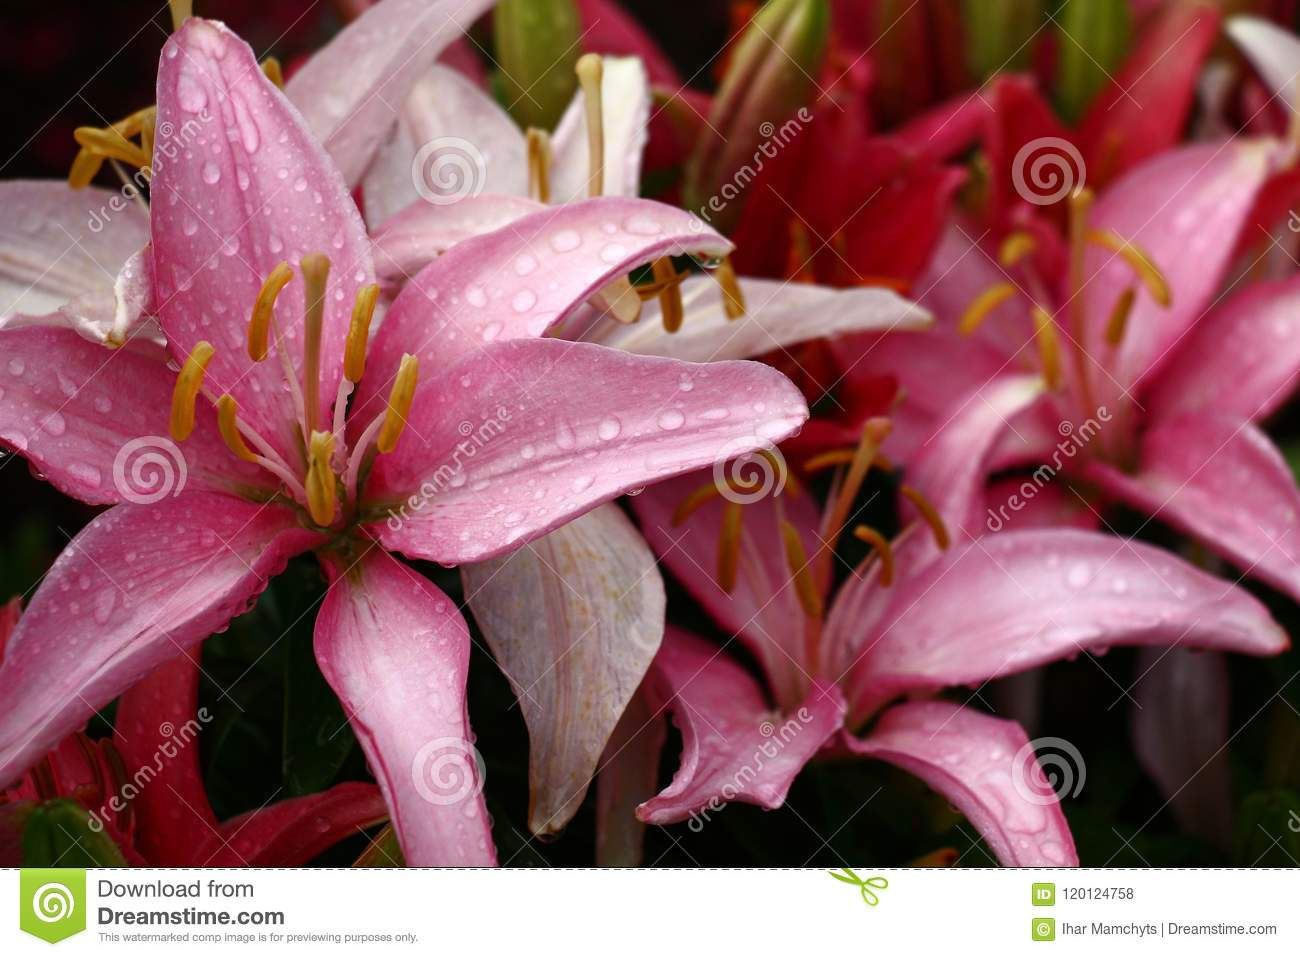 Lilies Pink Variety Stock Photo Image Of Grows Hybrid 120124758